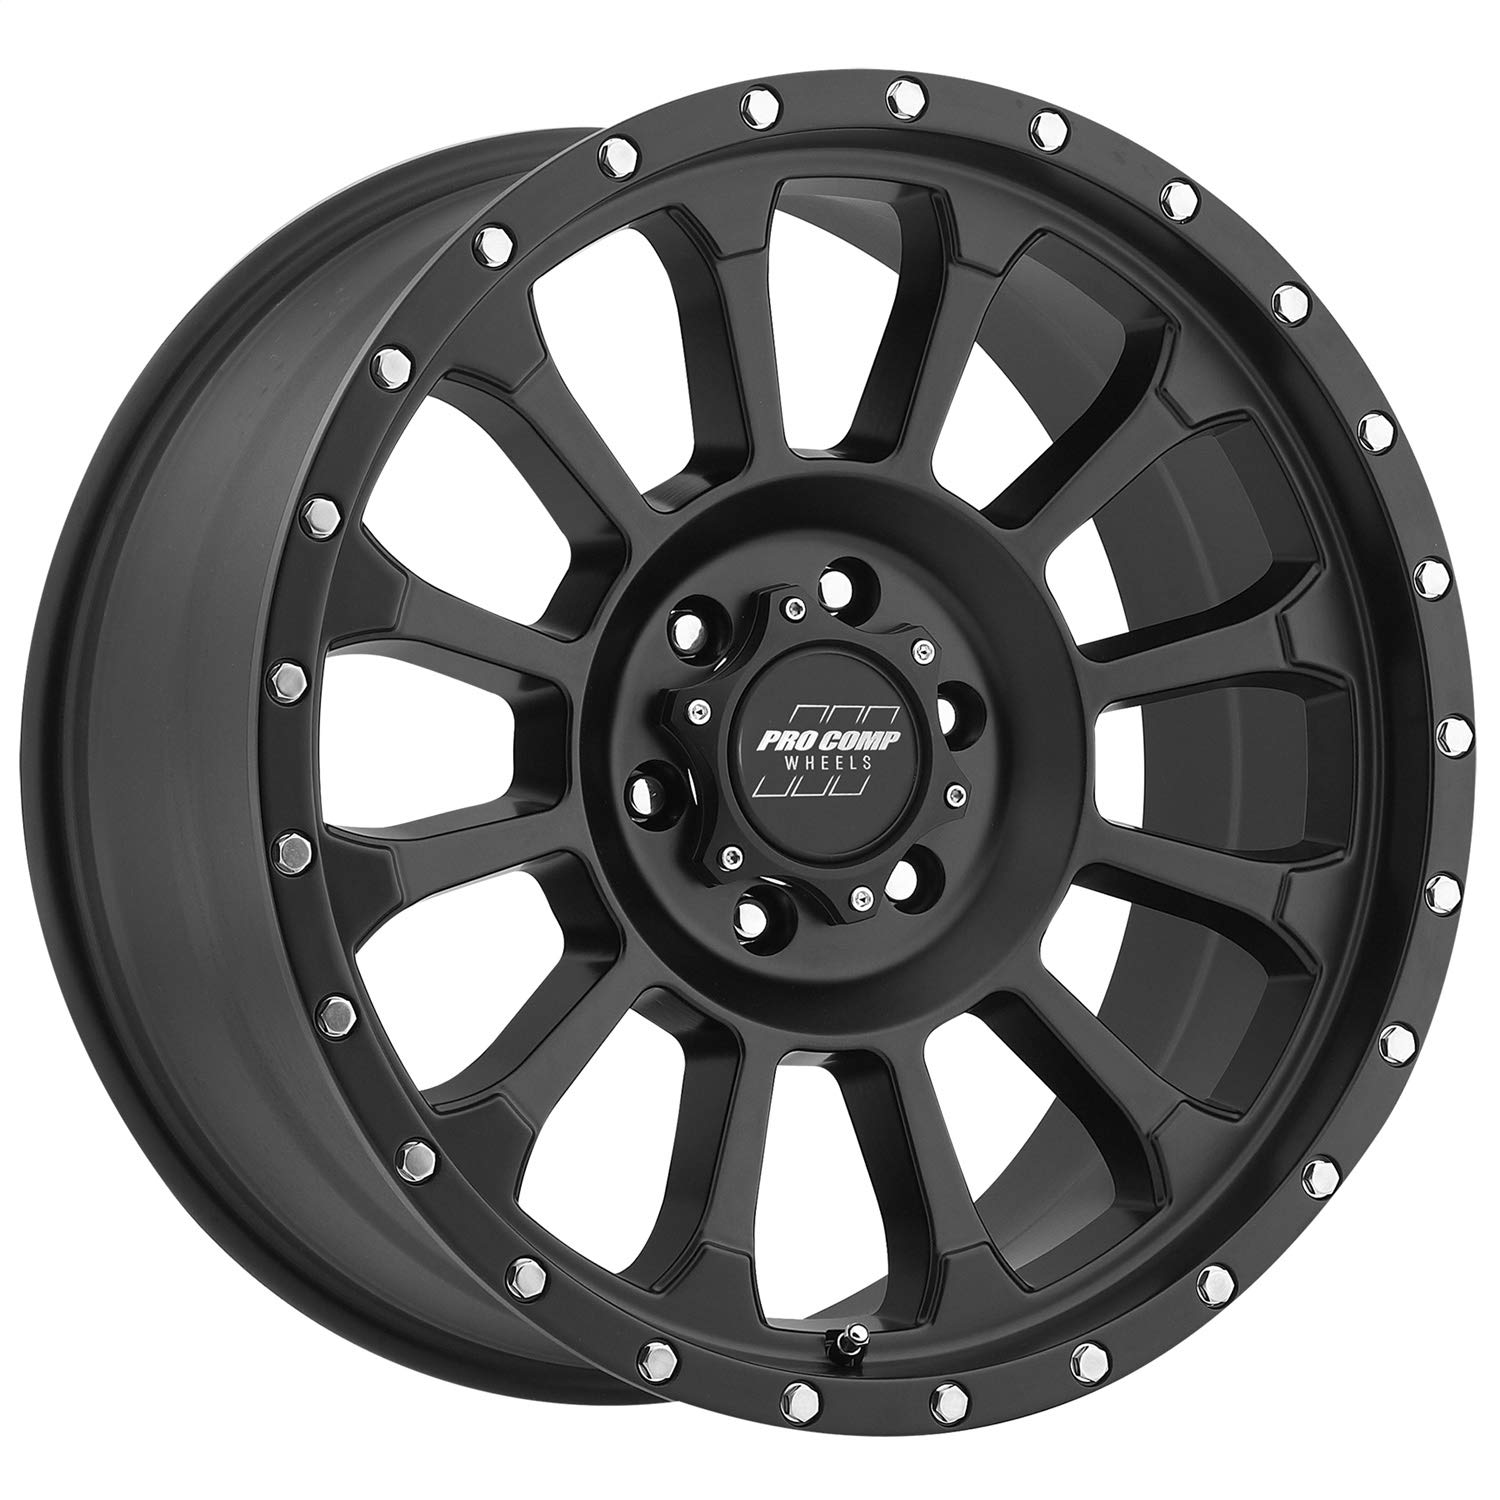 Pro Comp Alloys Series 34 Rockwell Wheel with Satin Black Finish 17x8.5//6x135mm